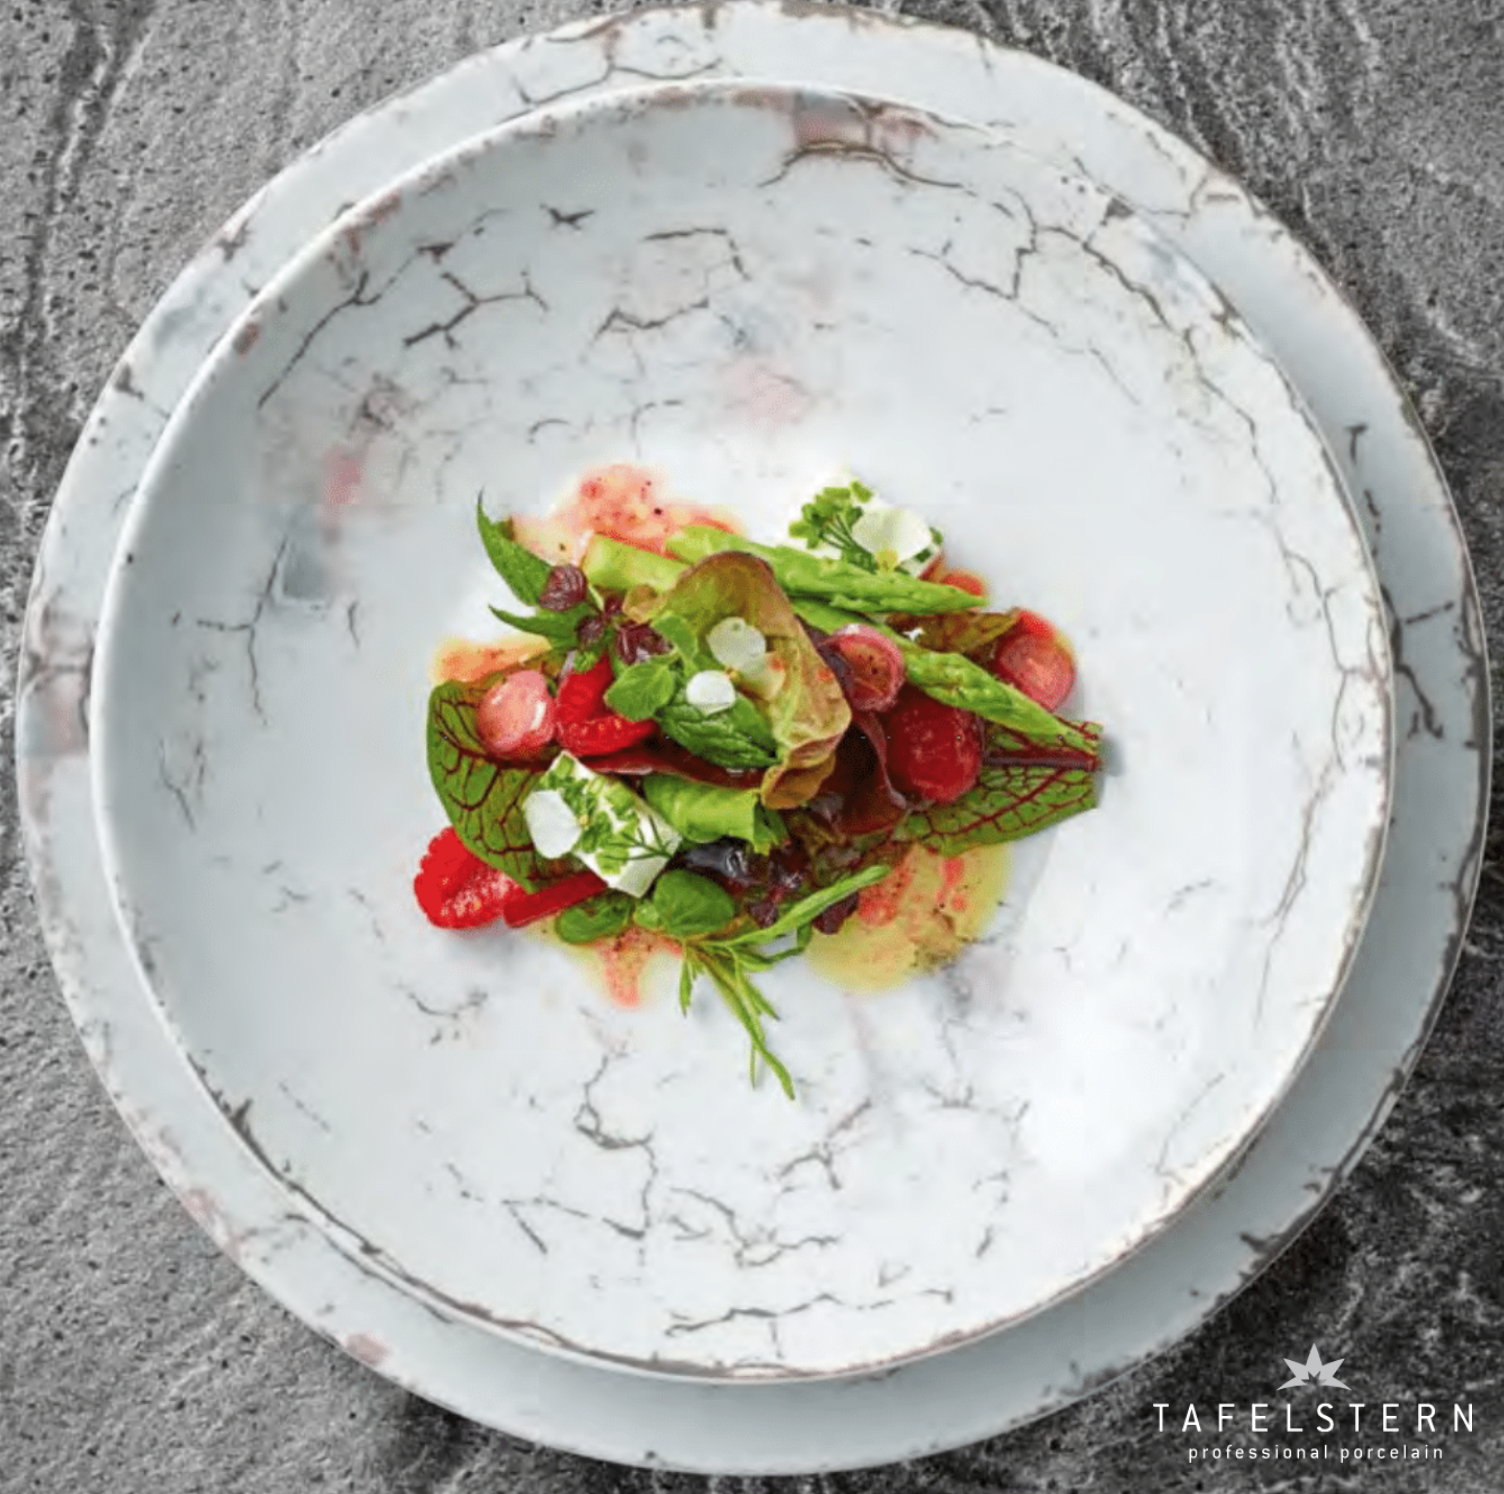 Bringing the Classic Beauty of Carrara Marble to the Tabletop